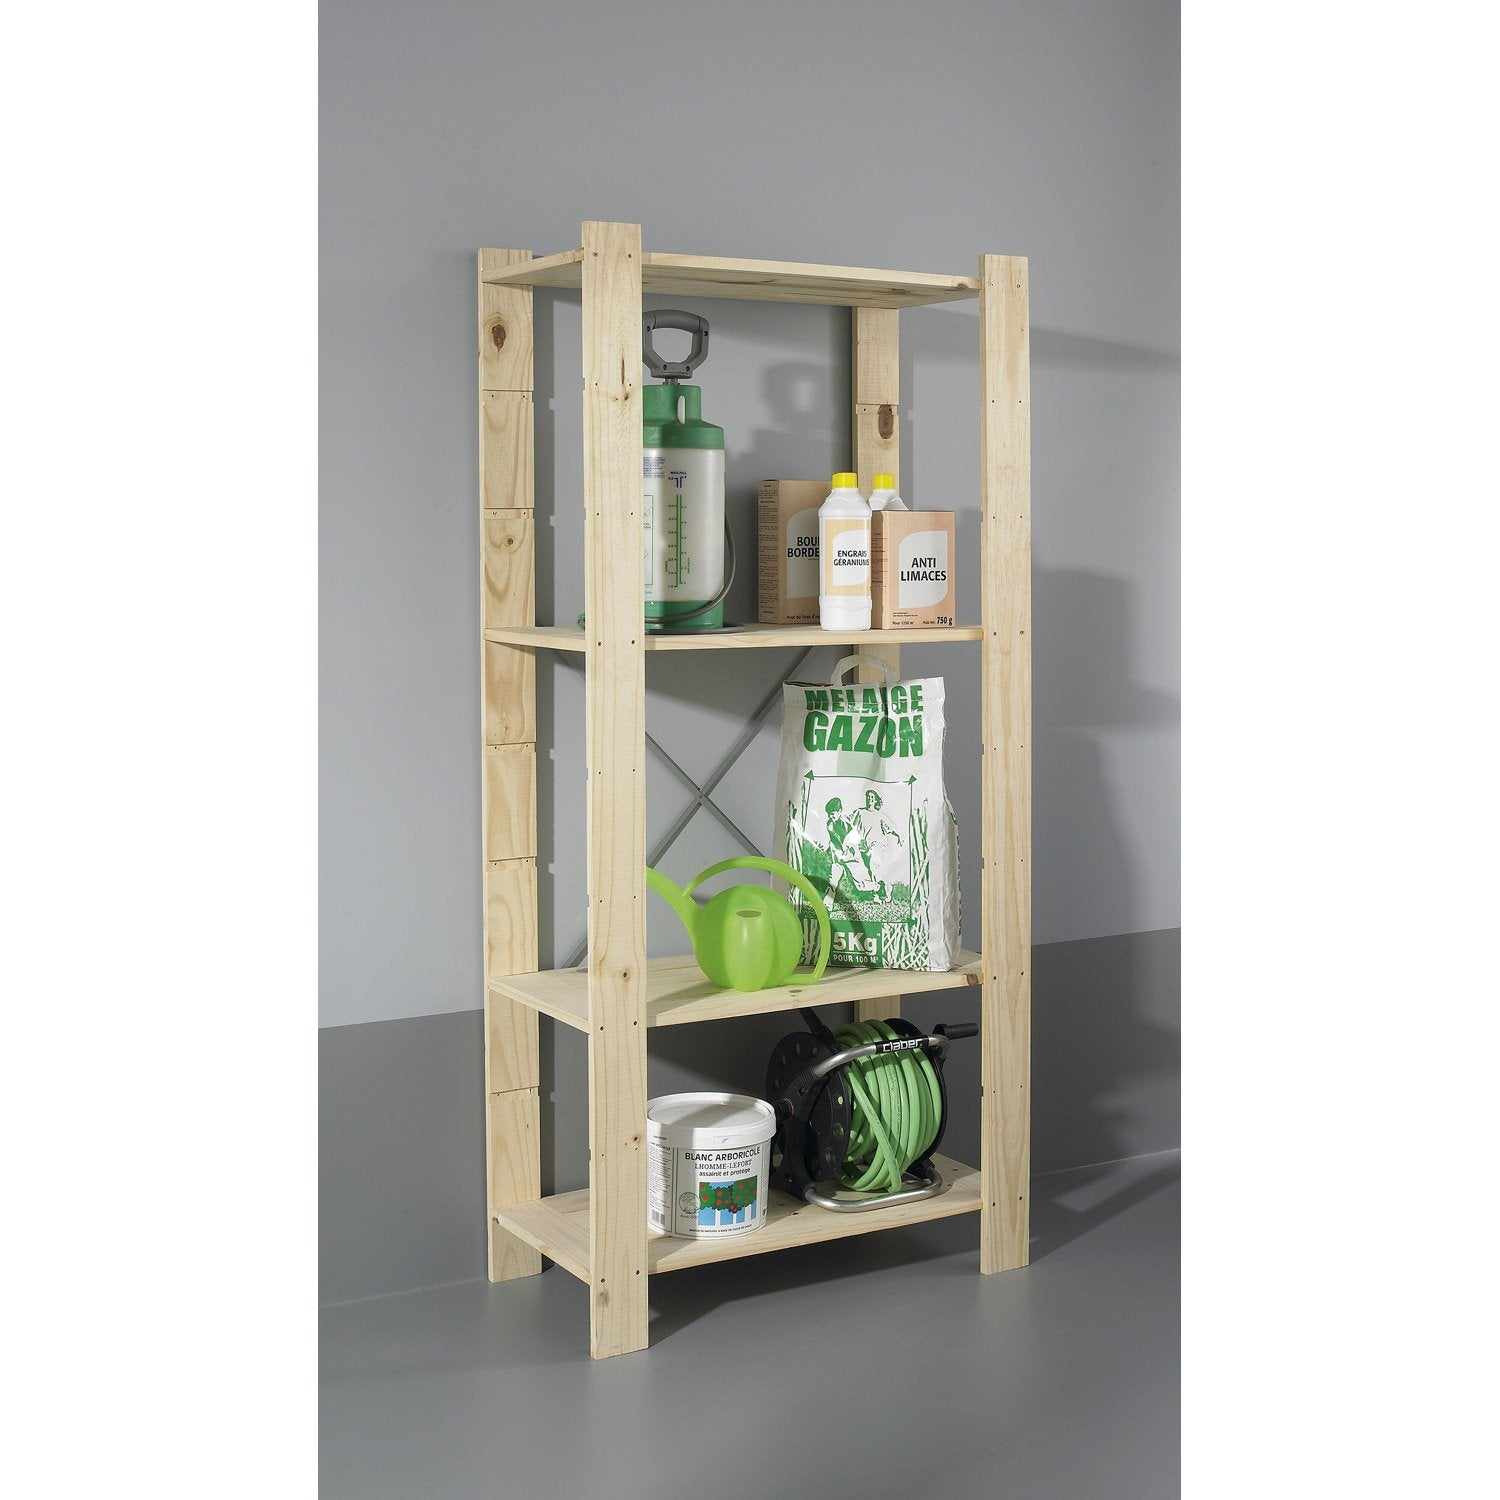 Etag re en pin 4 tablettes mod le spacea l82xh170xp40cm leroy merlin - Leroy merlin etagere bois ...